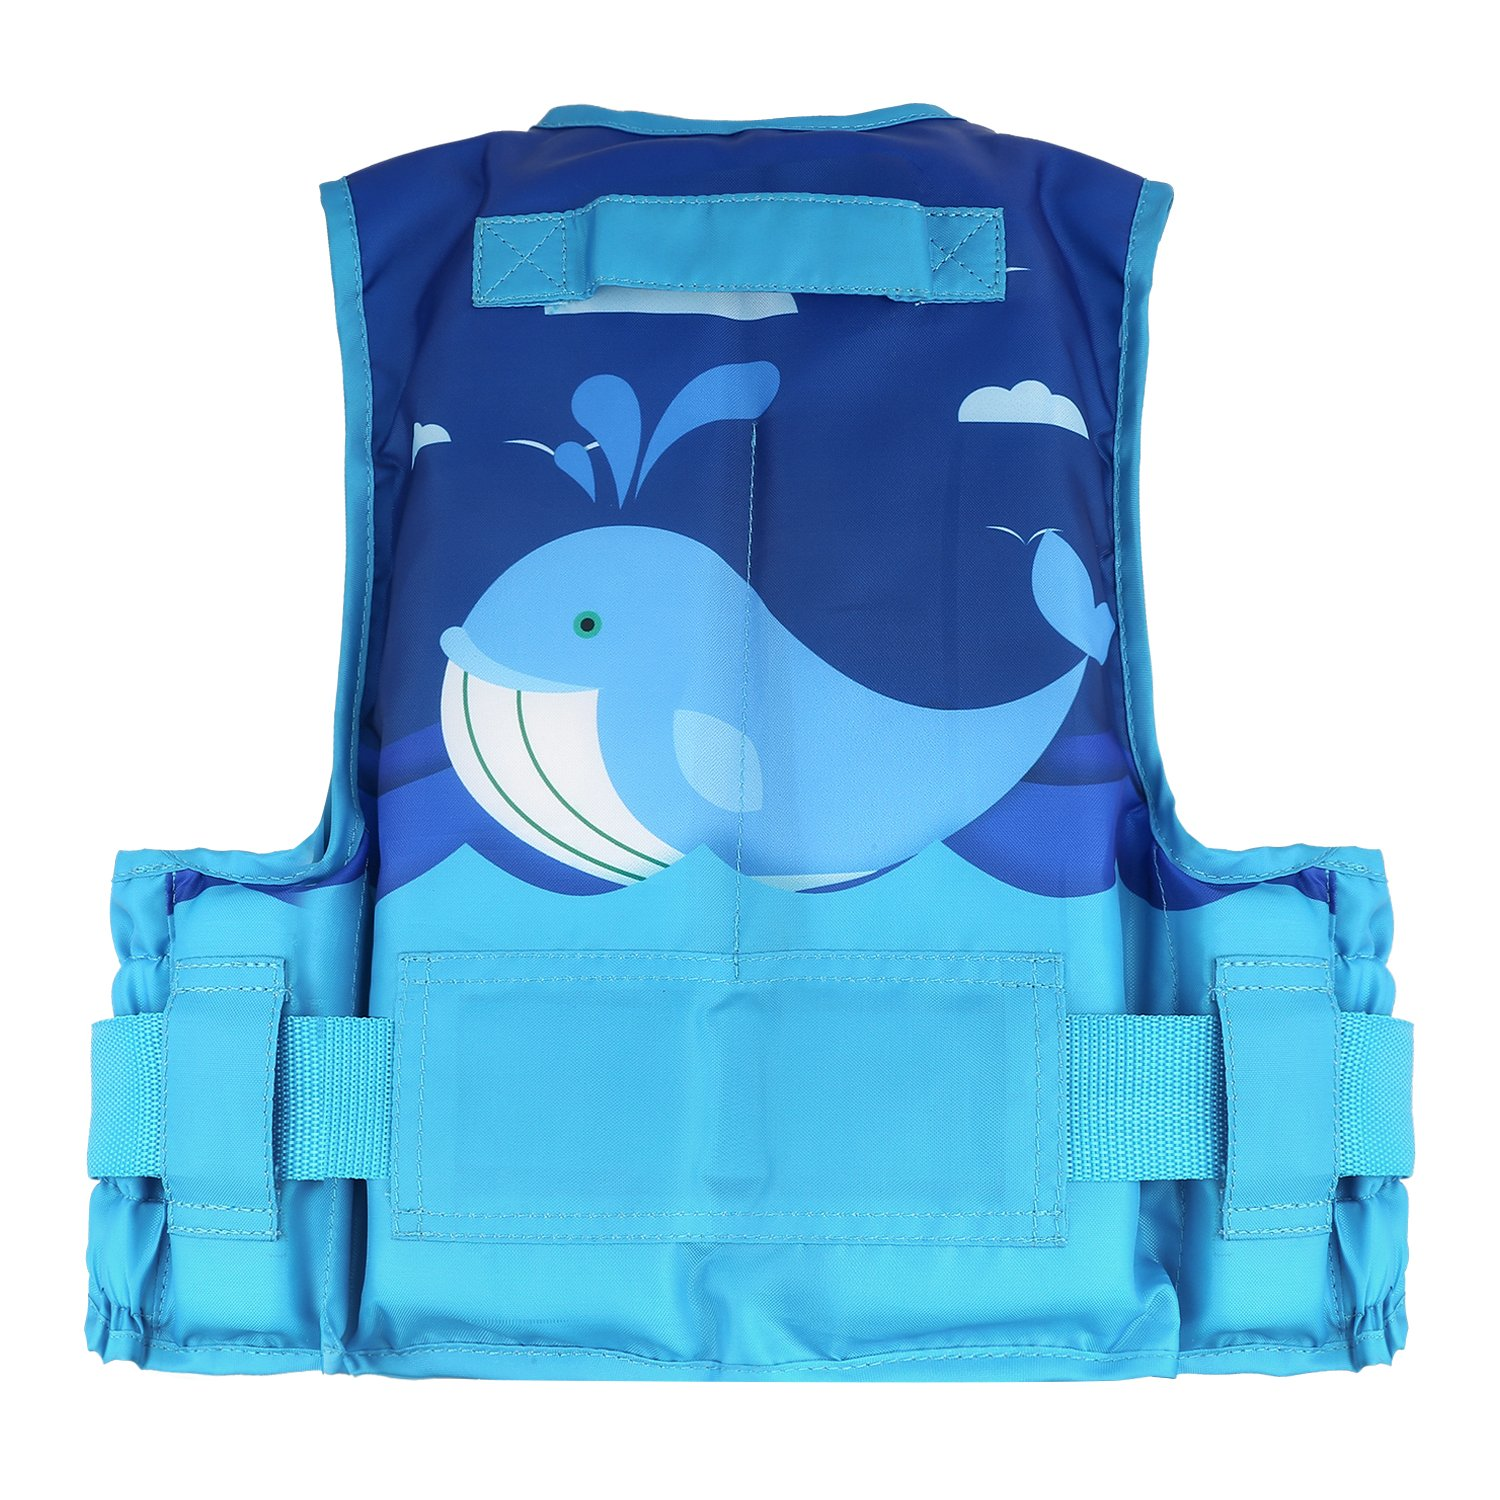 Size M Cute Whale Print Suitable for 35-55 lbs Child Size Watersports Swim Vest Flotation Device Size L /& 55-77 lbs HeySplash Life Jacket for Kids